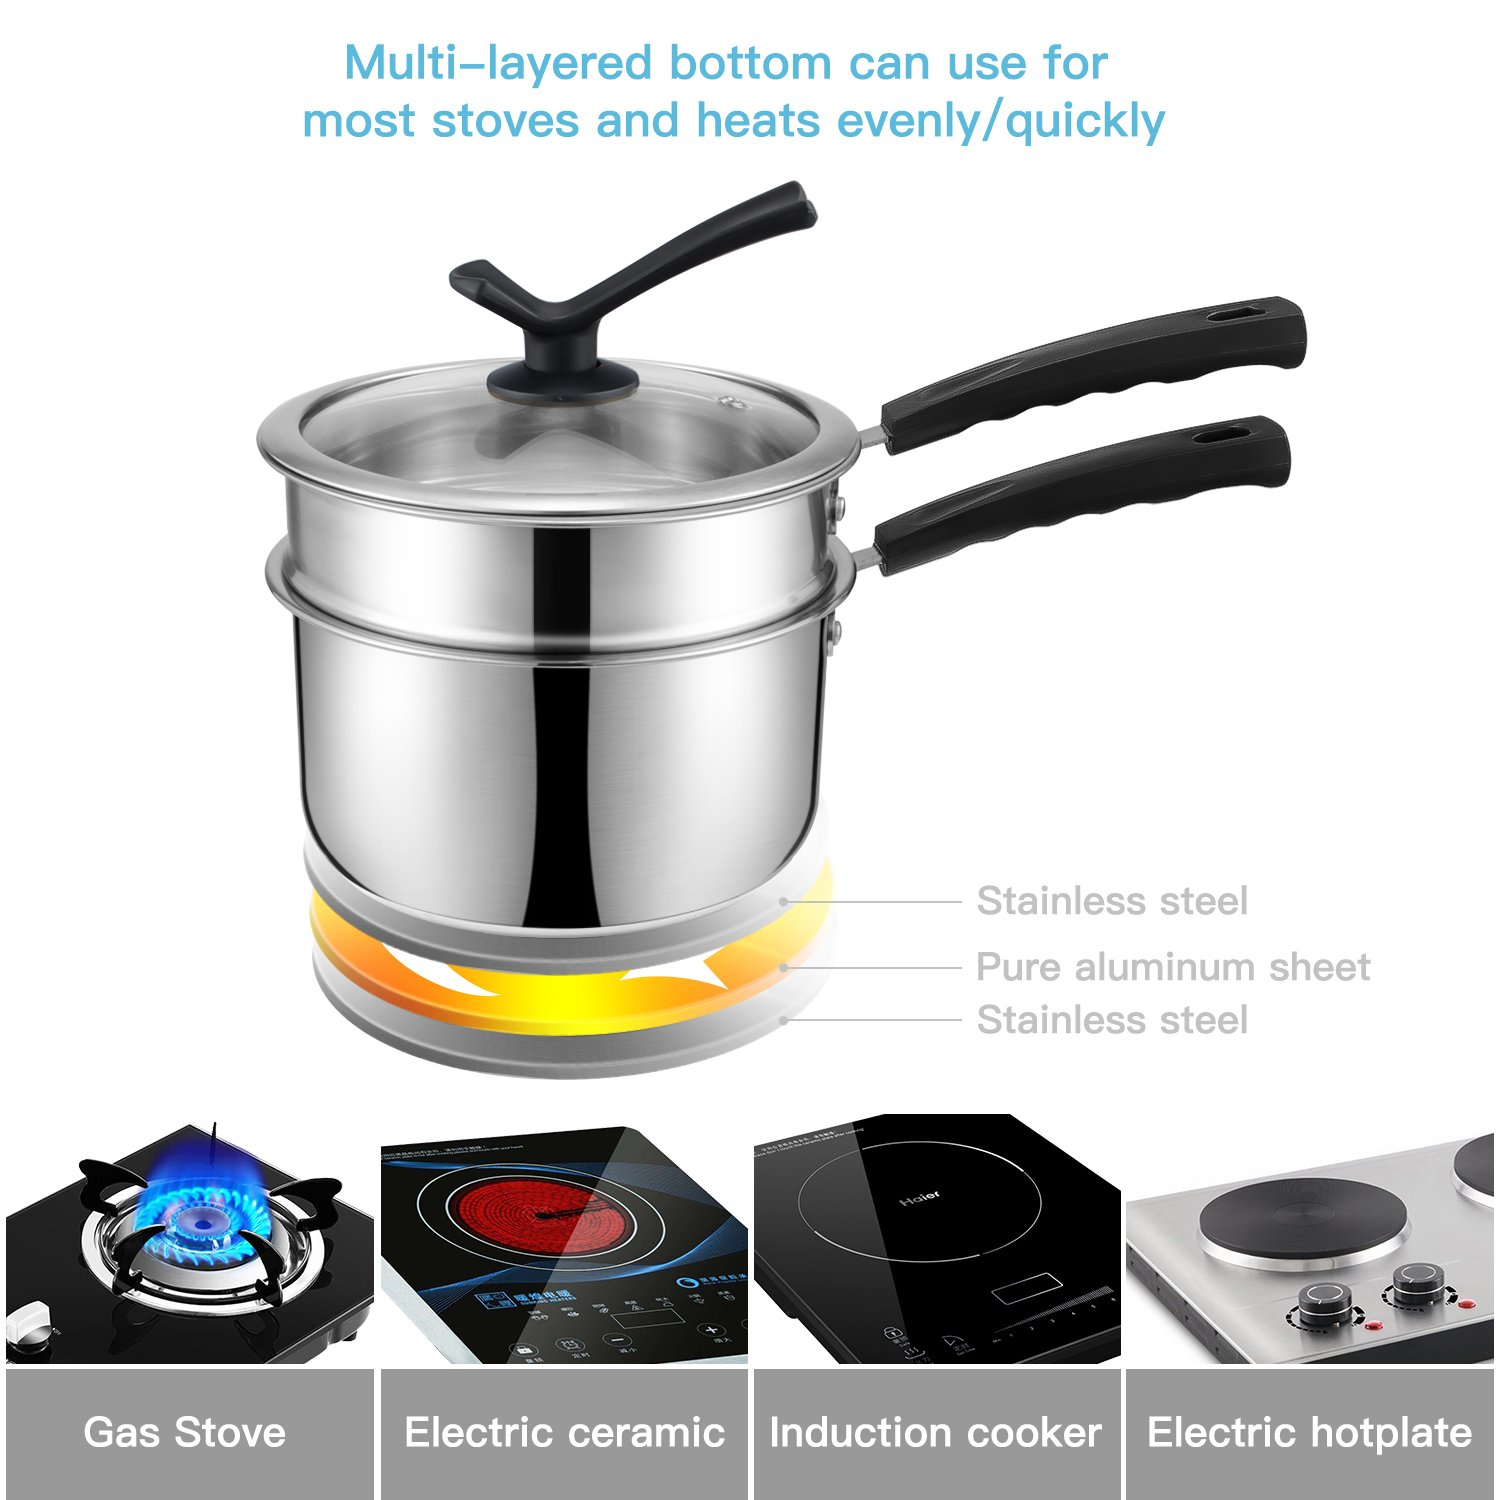 Double Boiler&Classic Stainless Steel Non-Stick Saucepan,Melting Pot for Butter,Chocolate,Cheese,Caramel and Bonus with Tempered Glass Lid by JKsmart (Image #4)